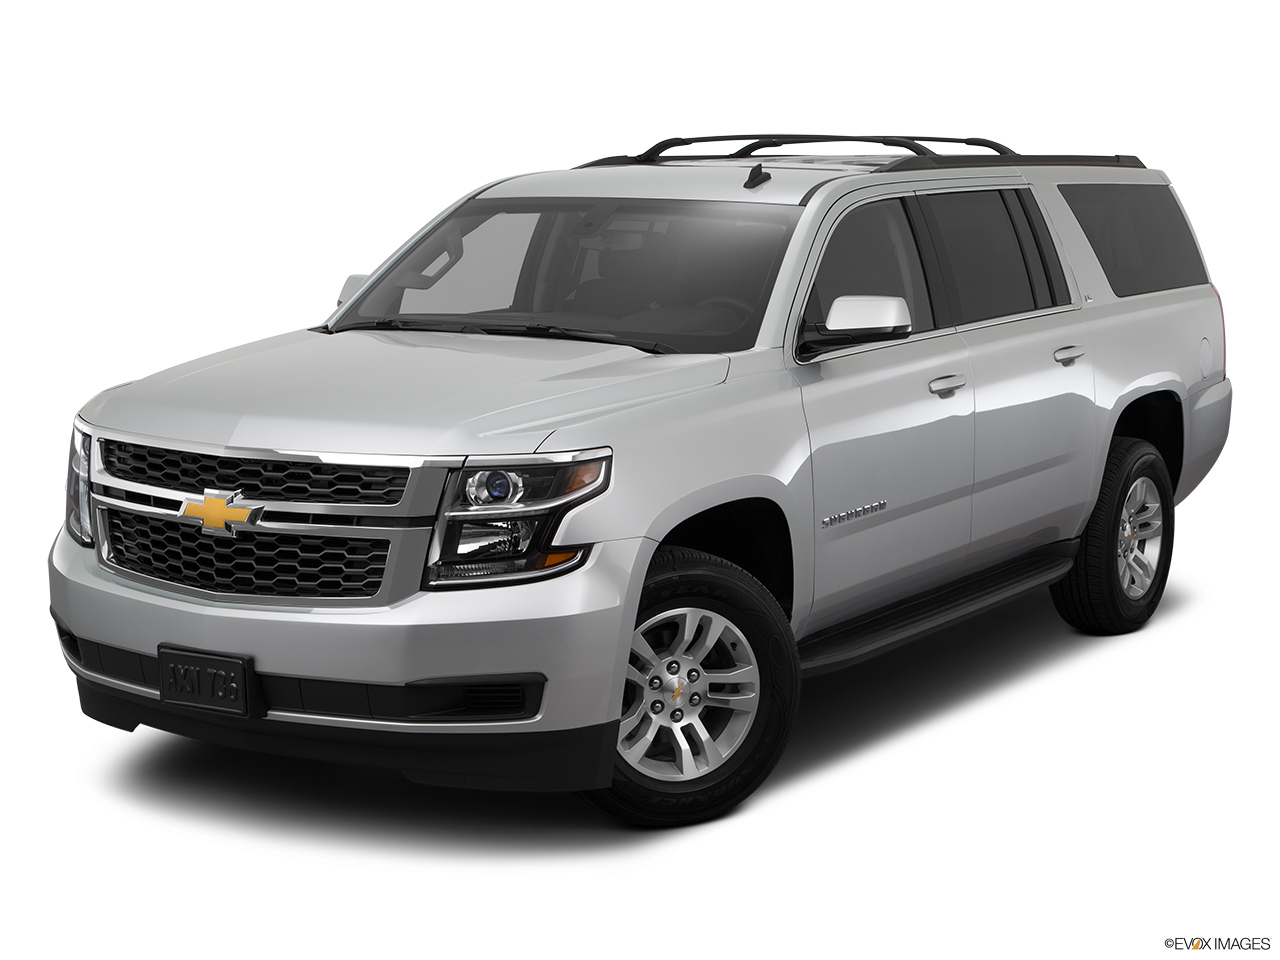 2016 chevrolet suburban prices in uae gulf specs. Black Bedroom Furniture Sets. Home Design Ideas